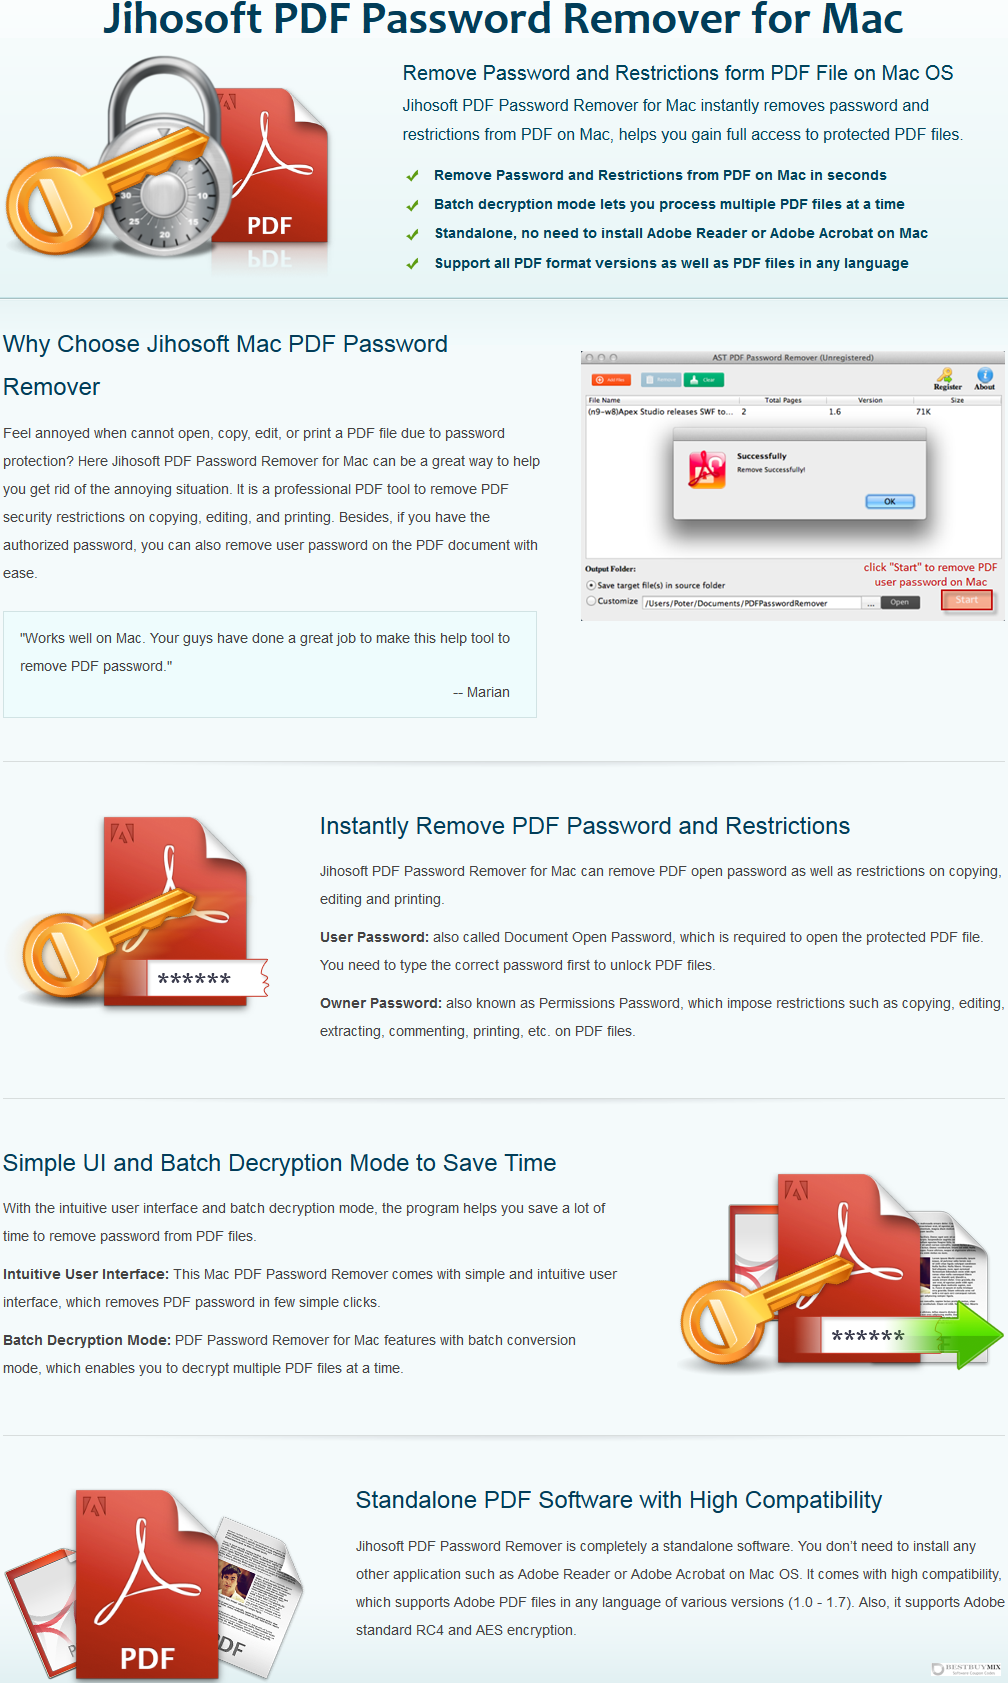 Jihosoft PDF Password Remover for Mac Discount Coupon Code